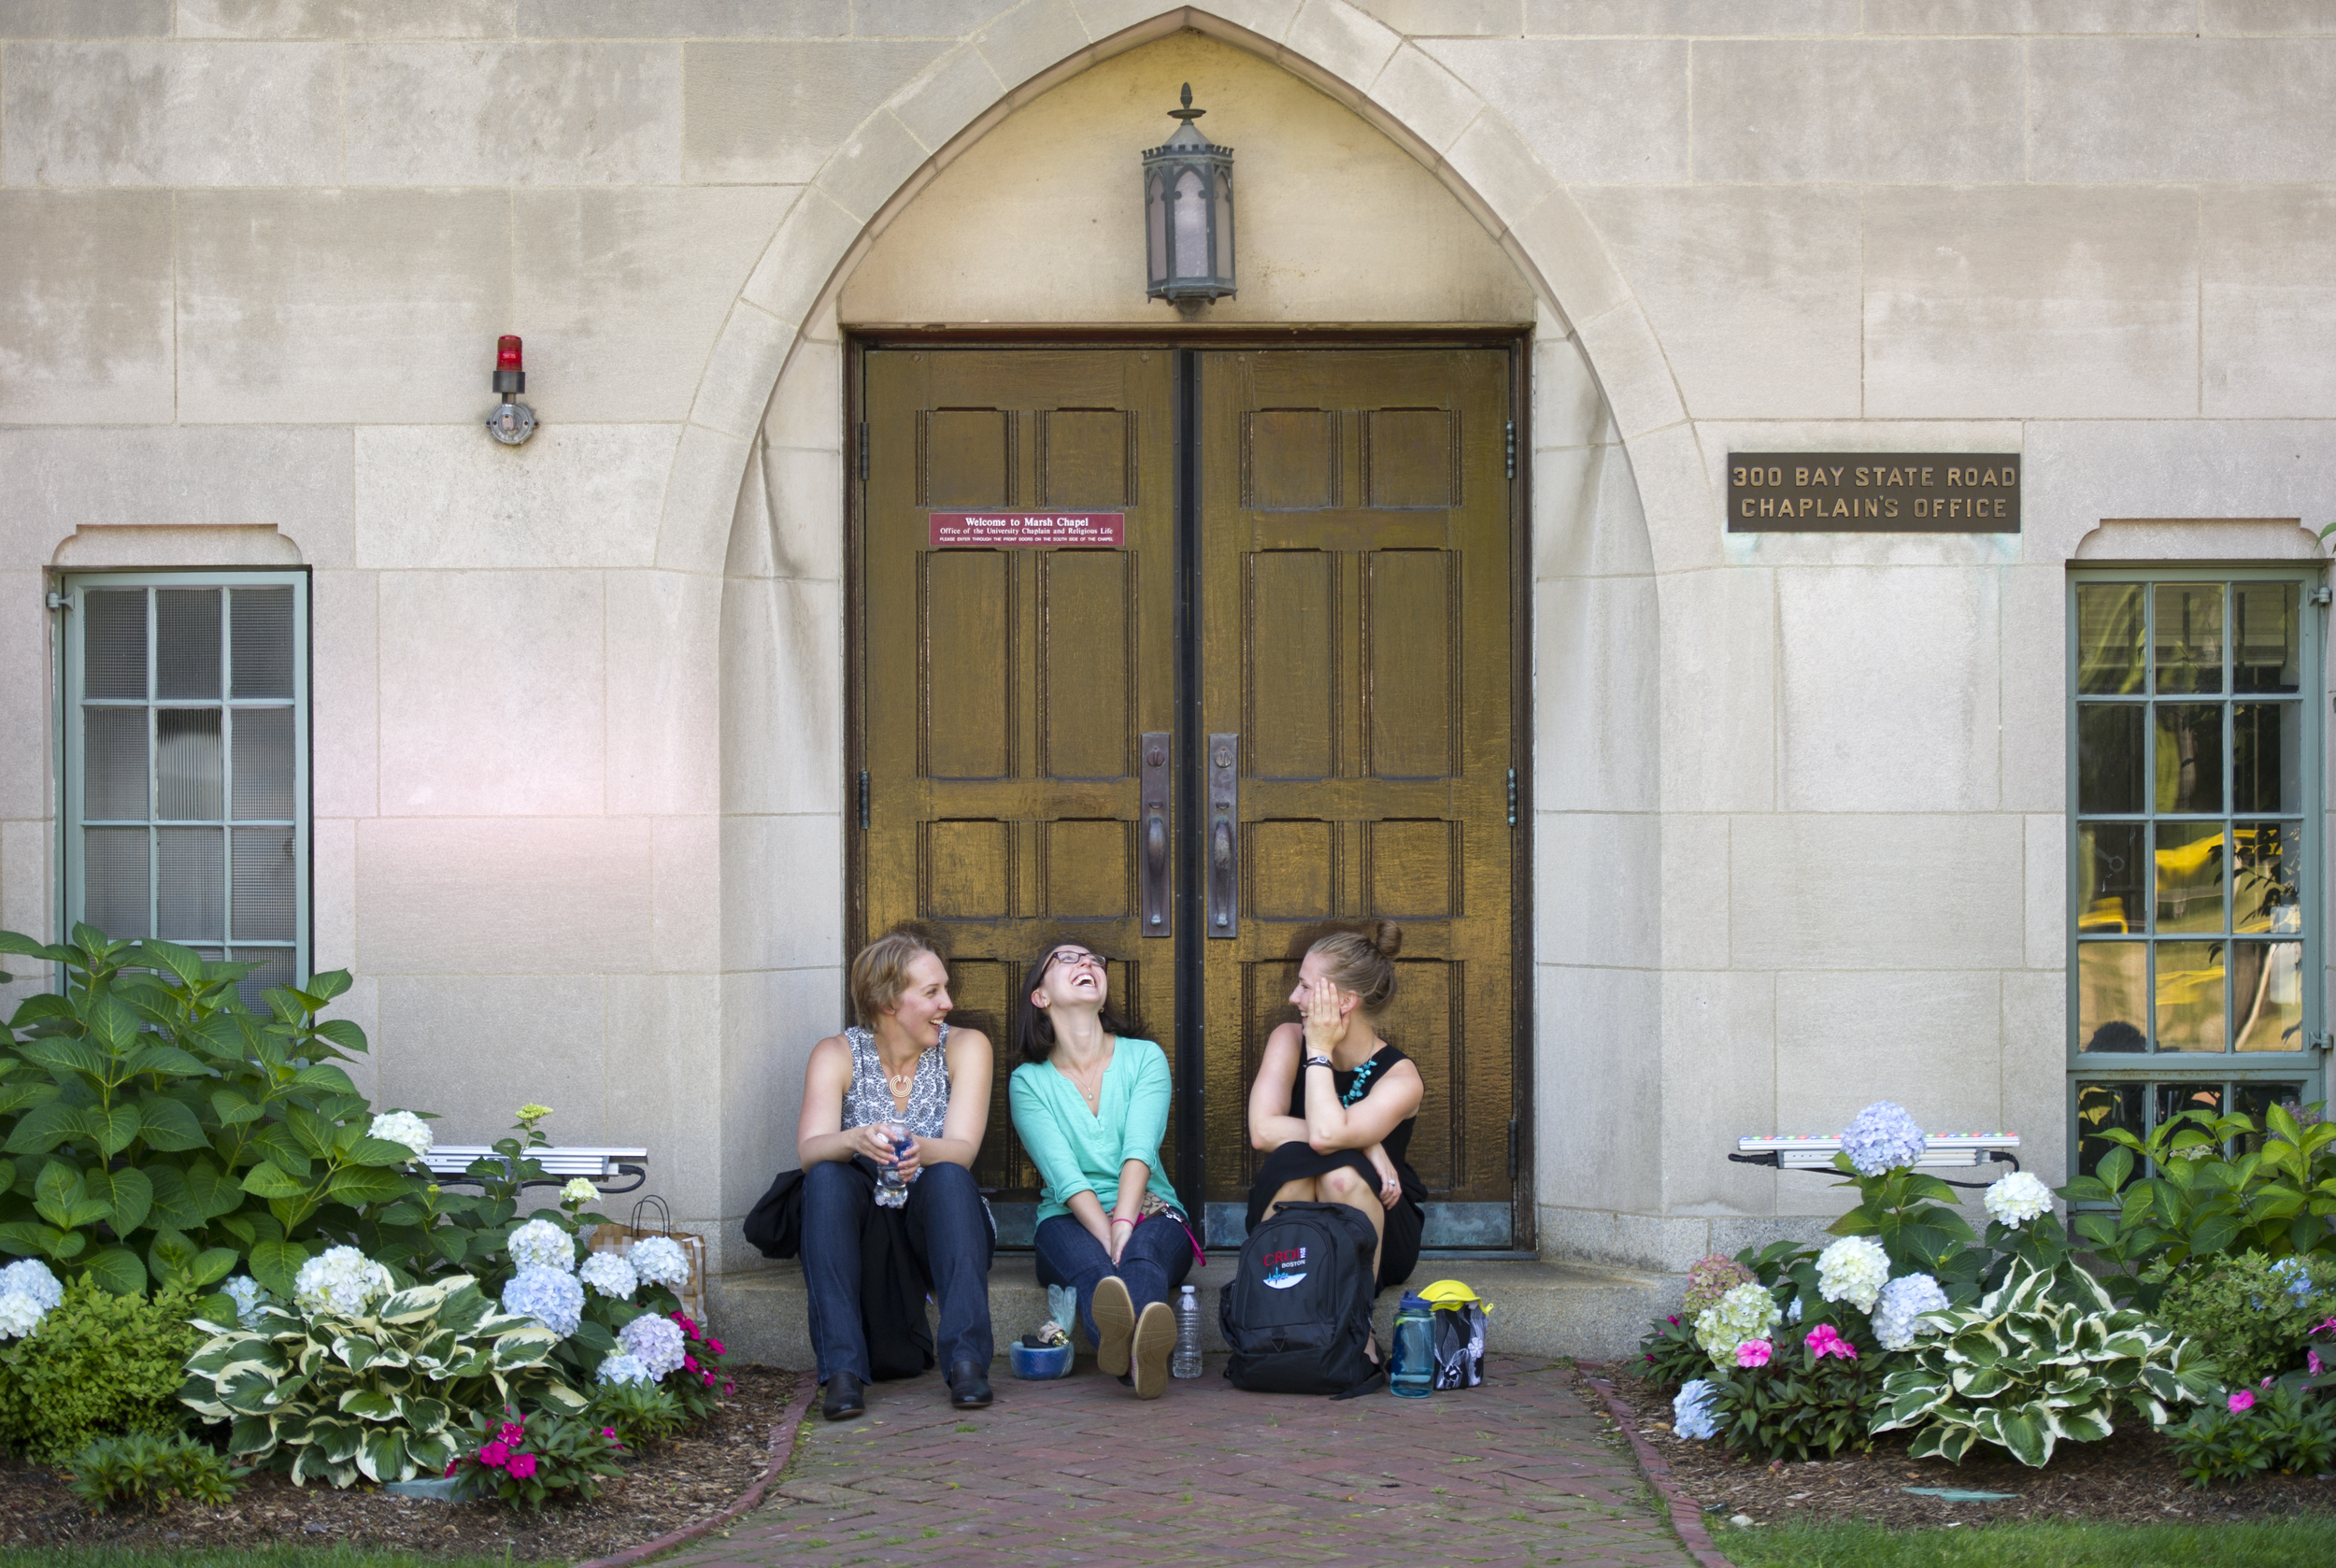 Debbie Hinck (LAW'17) from left, Yelena Kuznetsov (LAW'17), and Hillary Chadwick (LAW'17) get to to know each other during a break between classes September 4, 2014. The three had met briefly for the first time back in the spring during an orientation. Photo by Cydney Scott for Boston University Photography